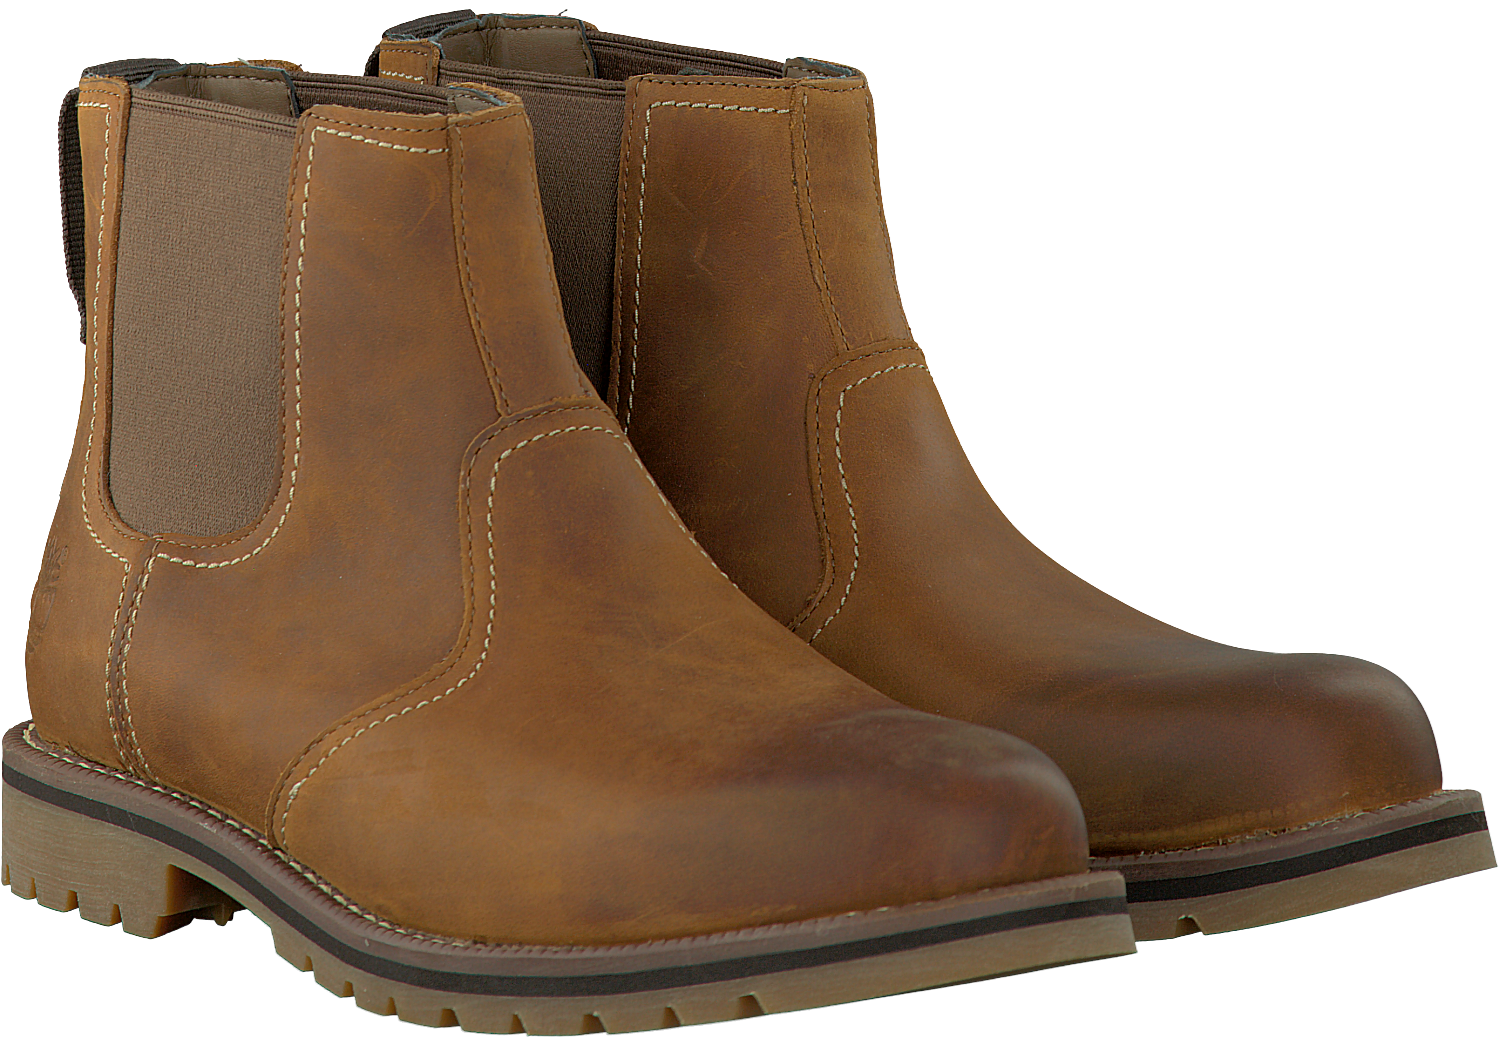 Chaussures Timberland Brun Pour Les Hommes 2feKiHarJ